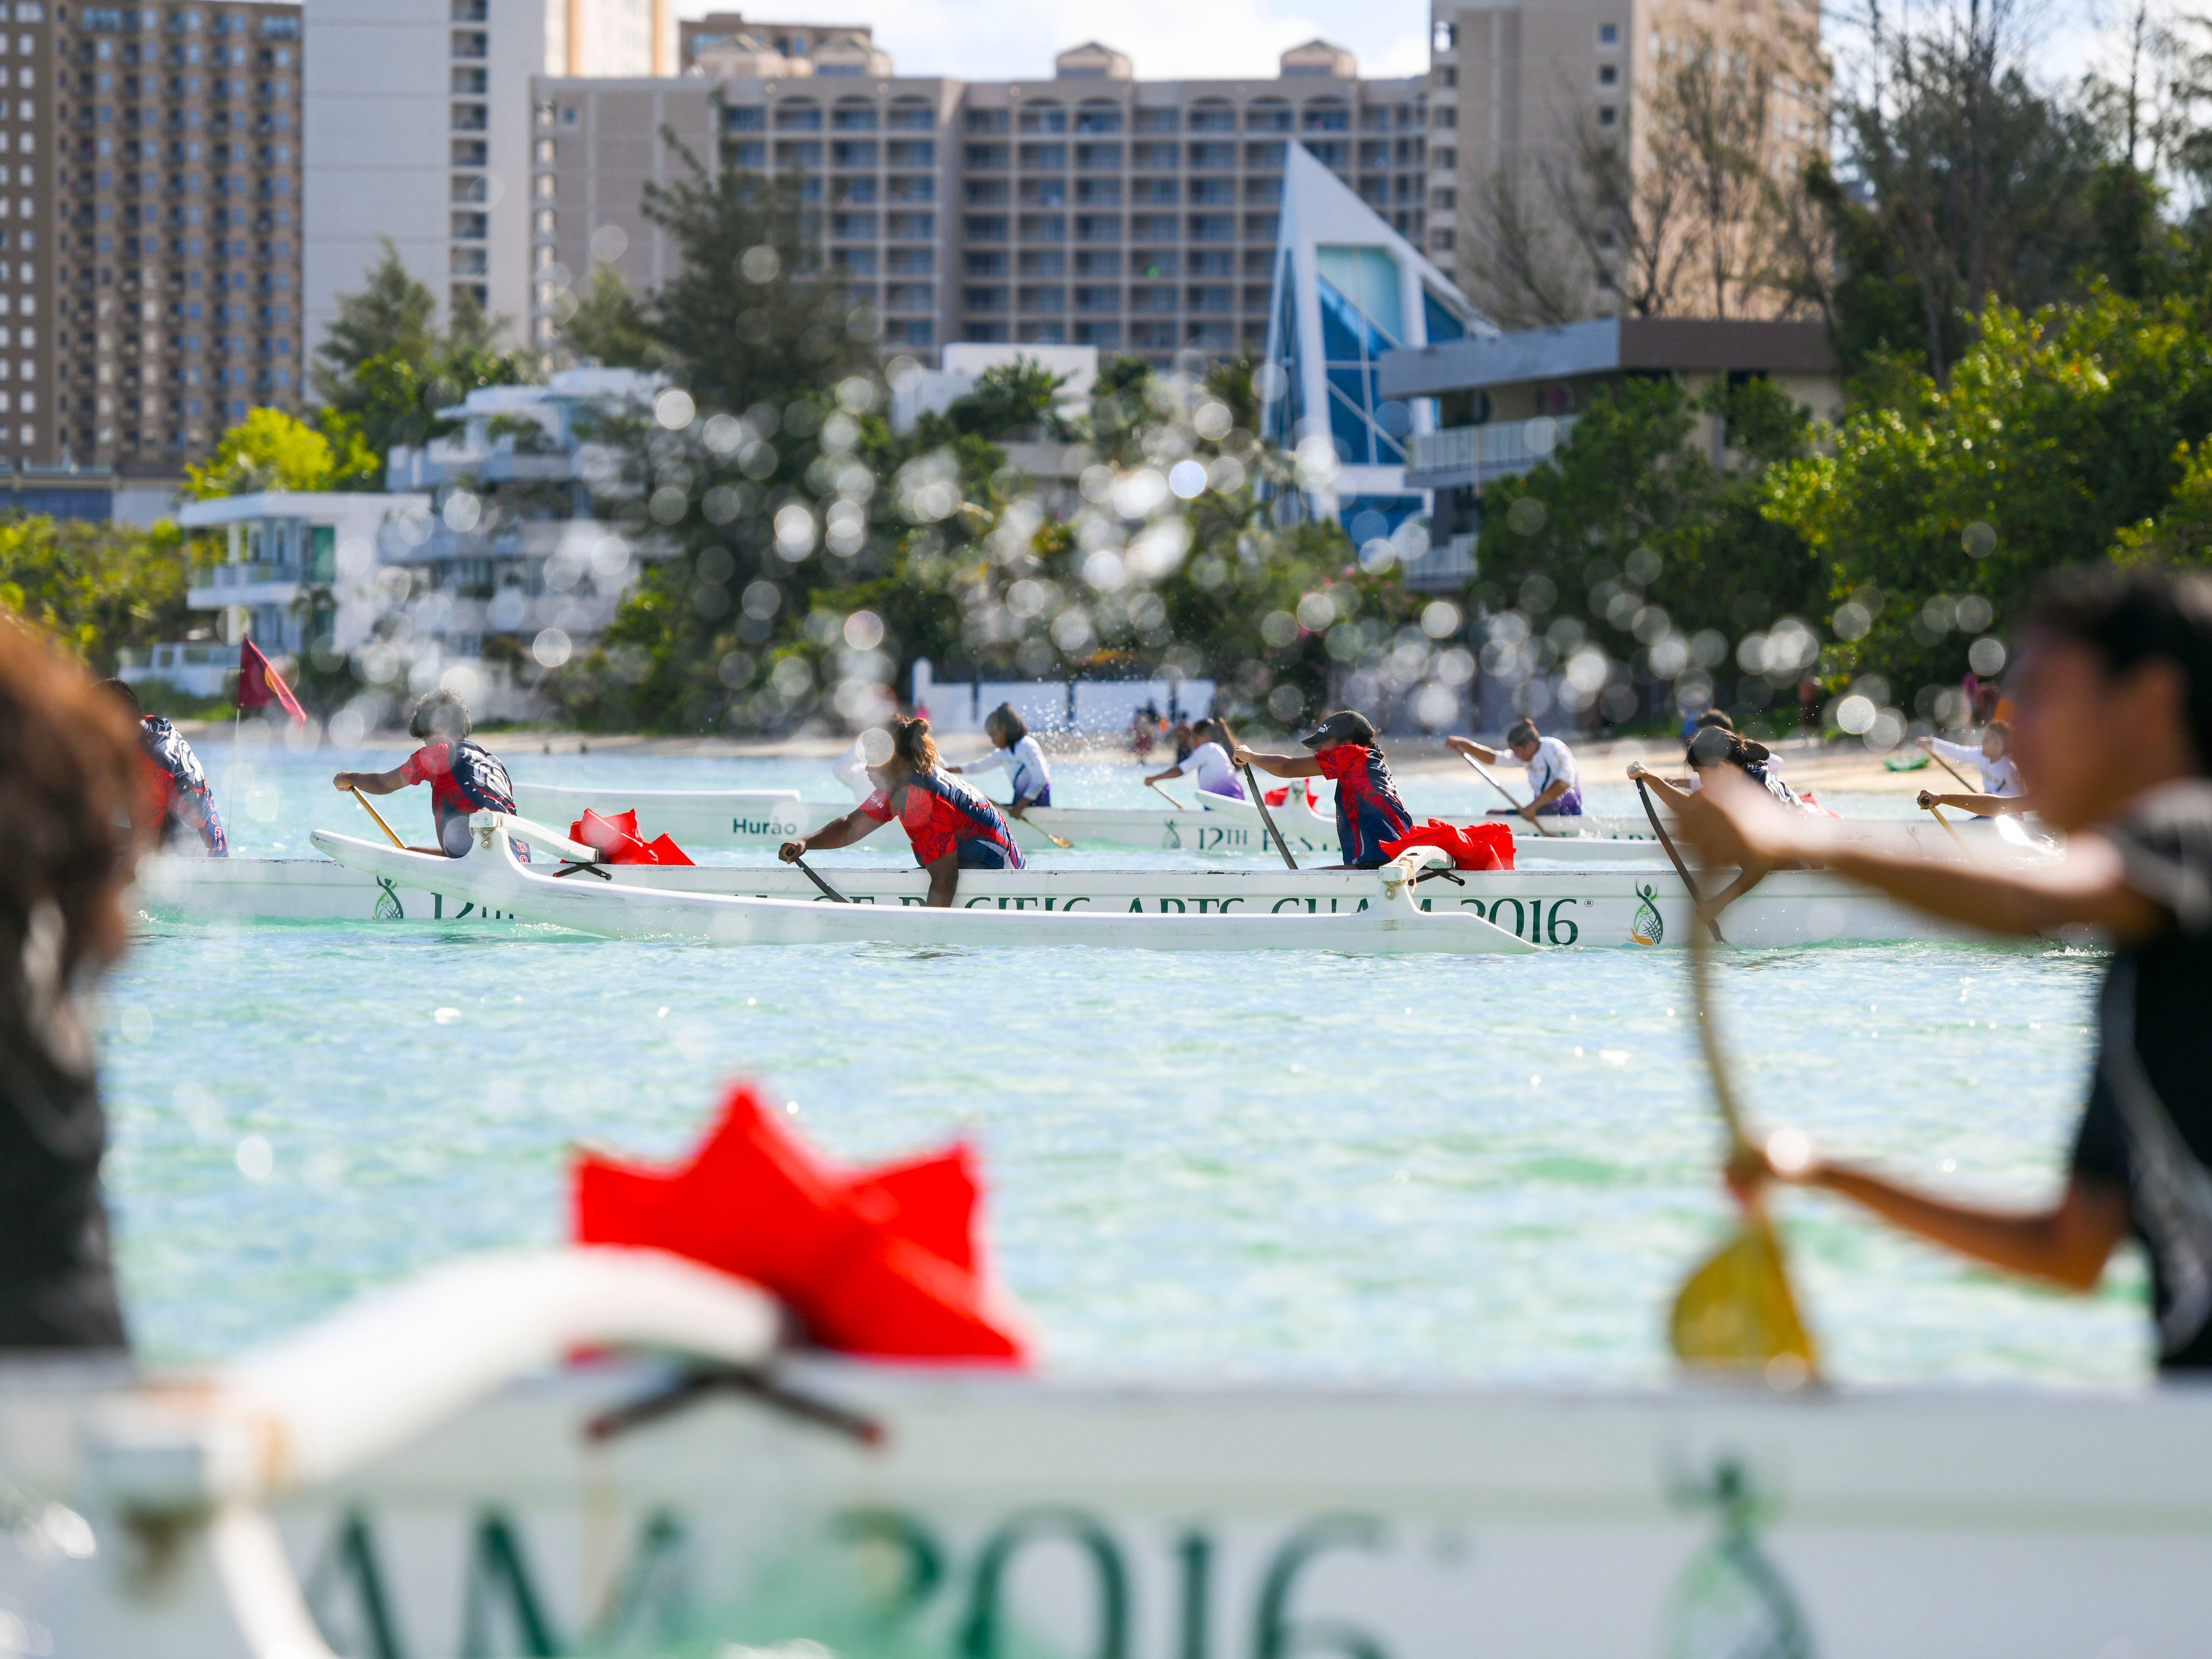 High school paddlers kick off from the starting line during a 1000m mixed manhoben preliminary race in IIAAG Paddling competition at Matapang Beach in Tumon on Saturday, May 11, 2019.